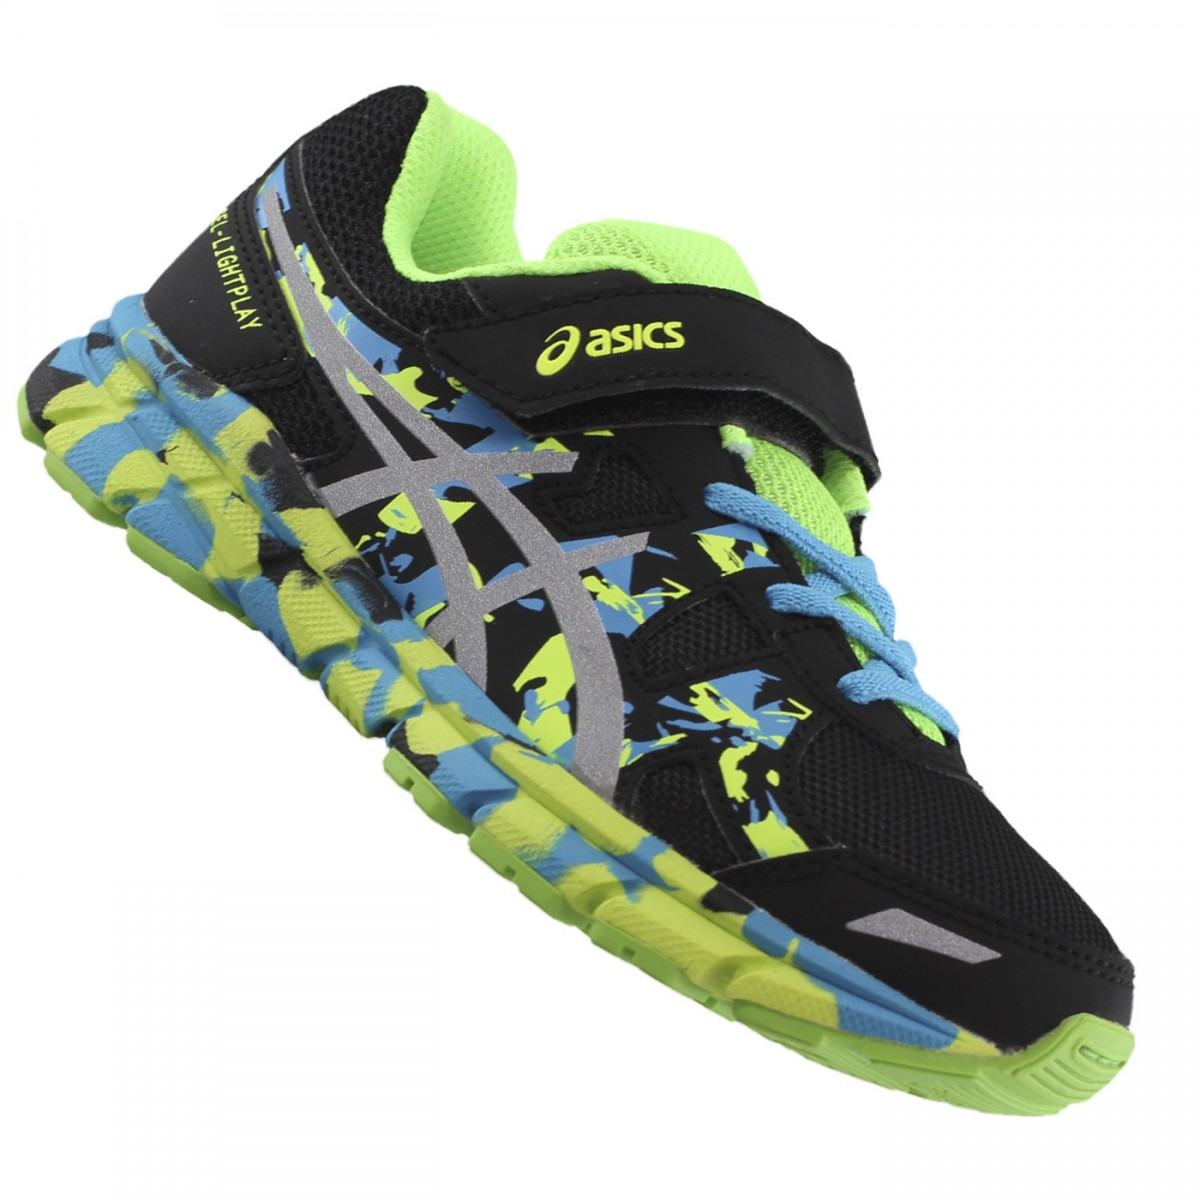 70c53e2680c Tênis Asics Gel-Lightplay Ps - Feminino